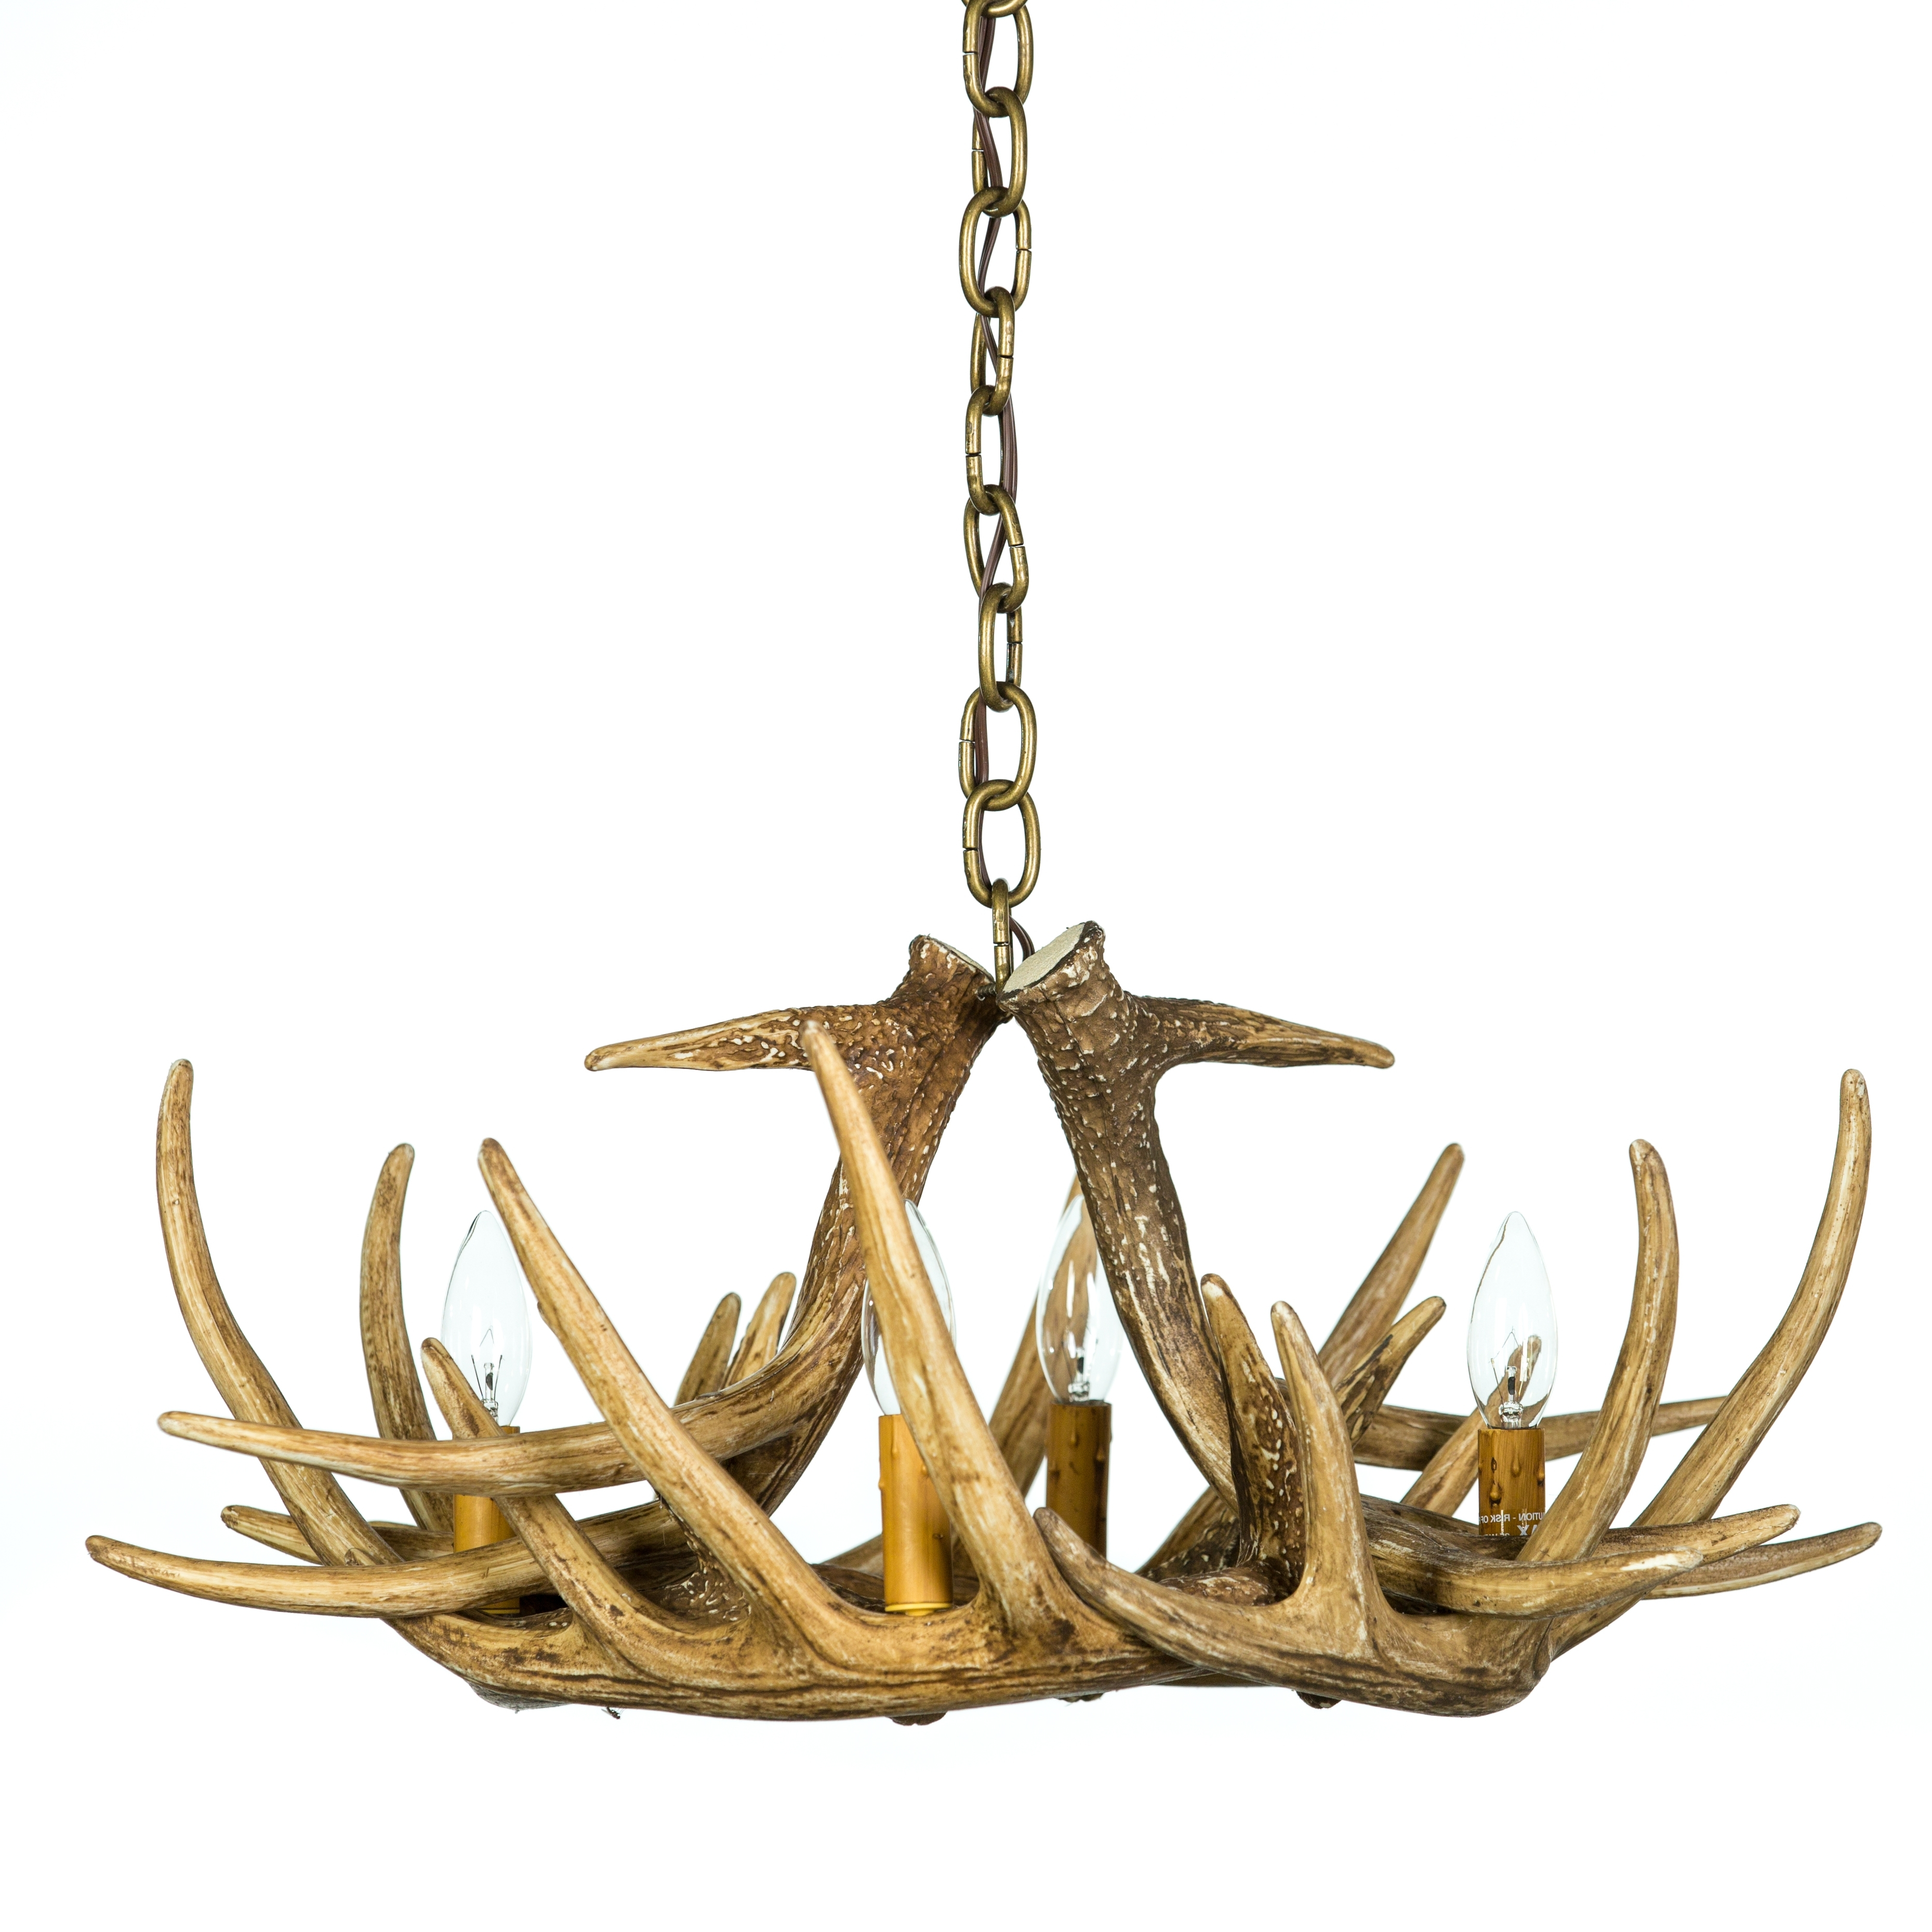 Cast Horn Designs Pertaining To Antler Chandelier (View 9 of 20)